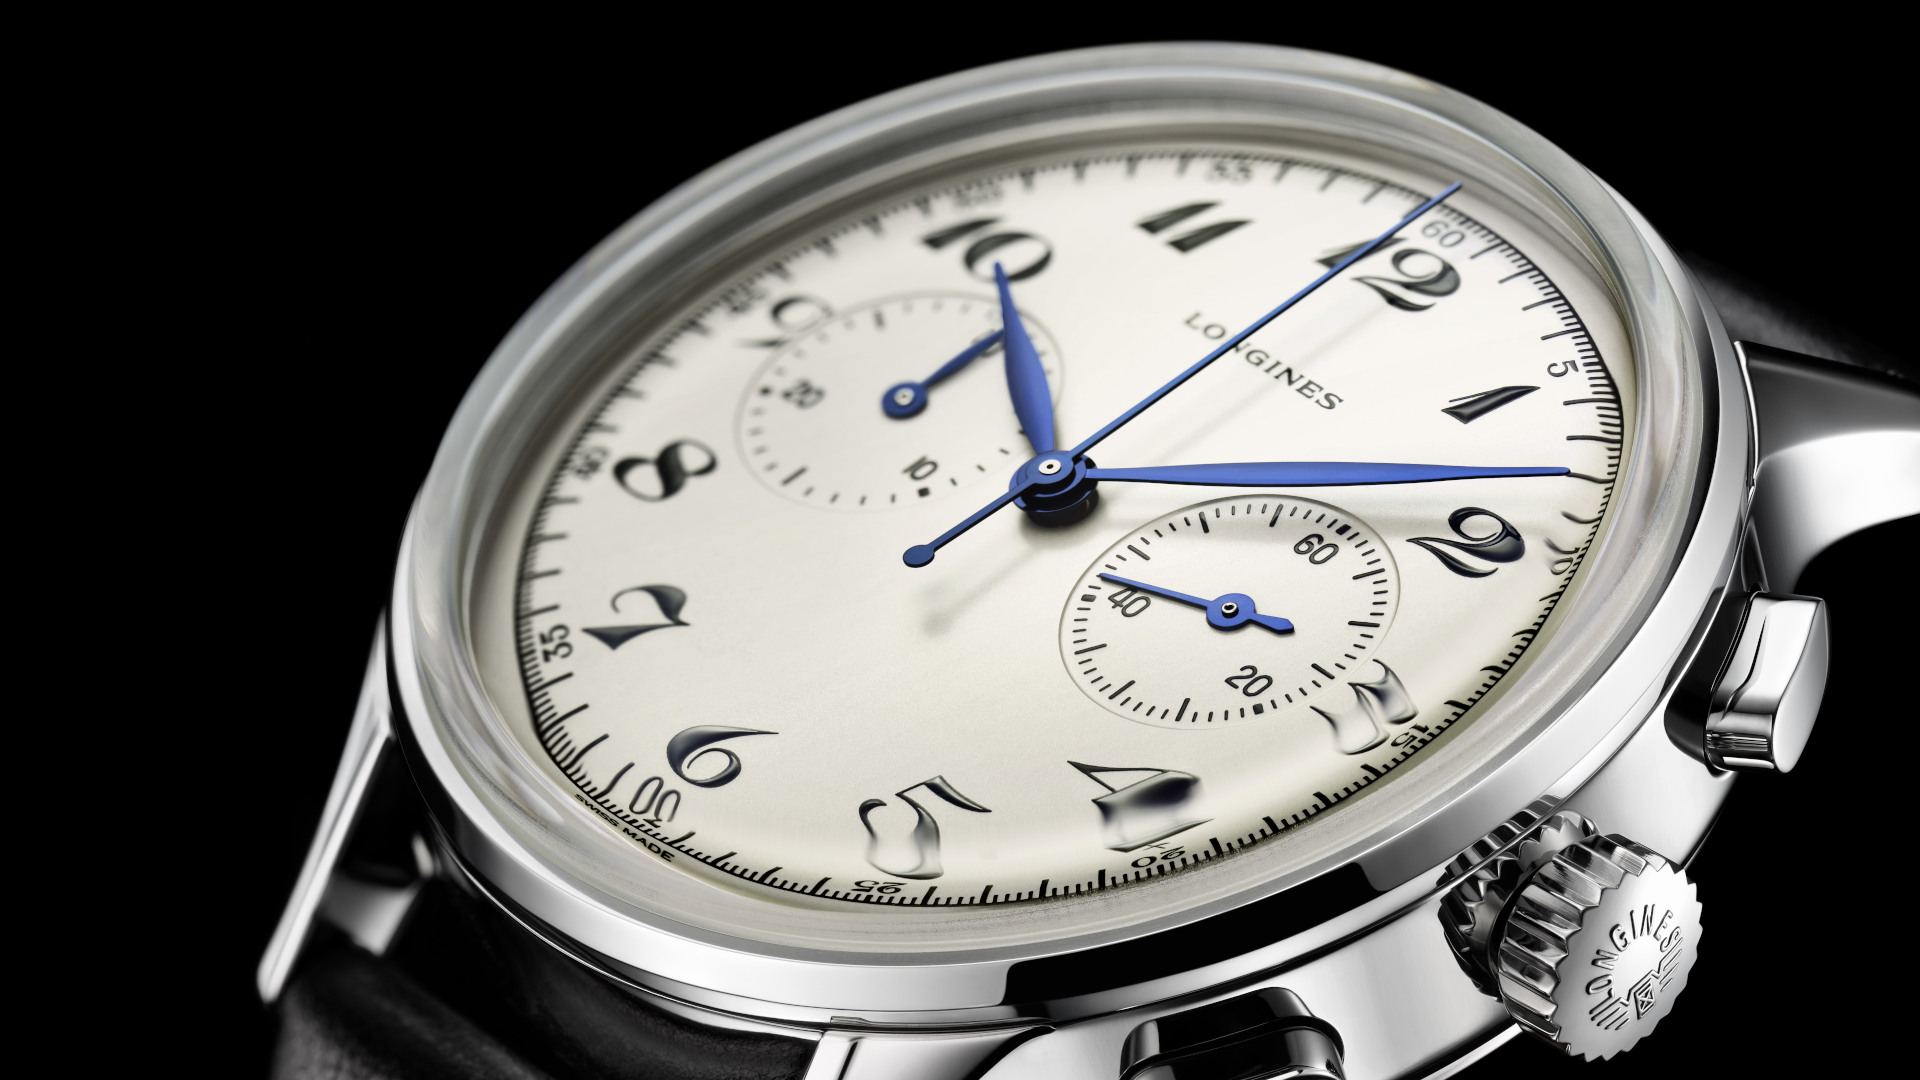 Longines digs into their archives yet again for a Classic Chronograph born in 1946